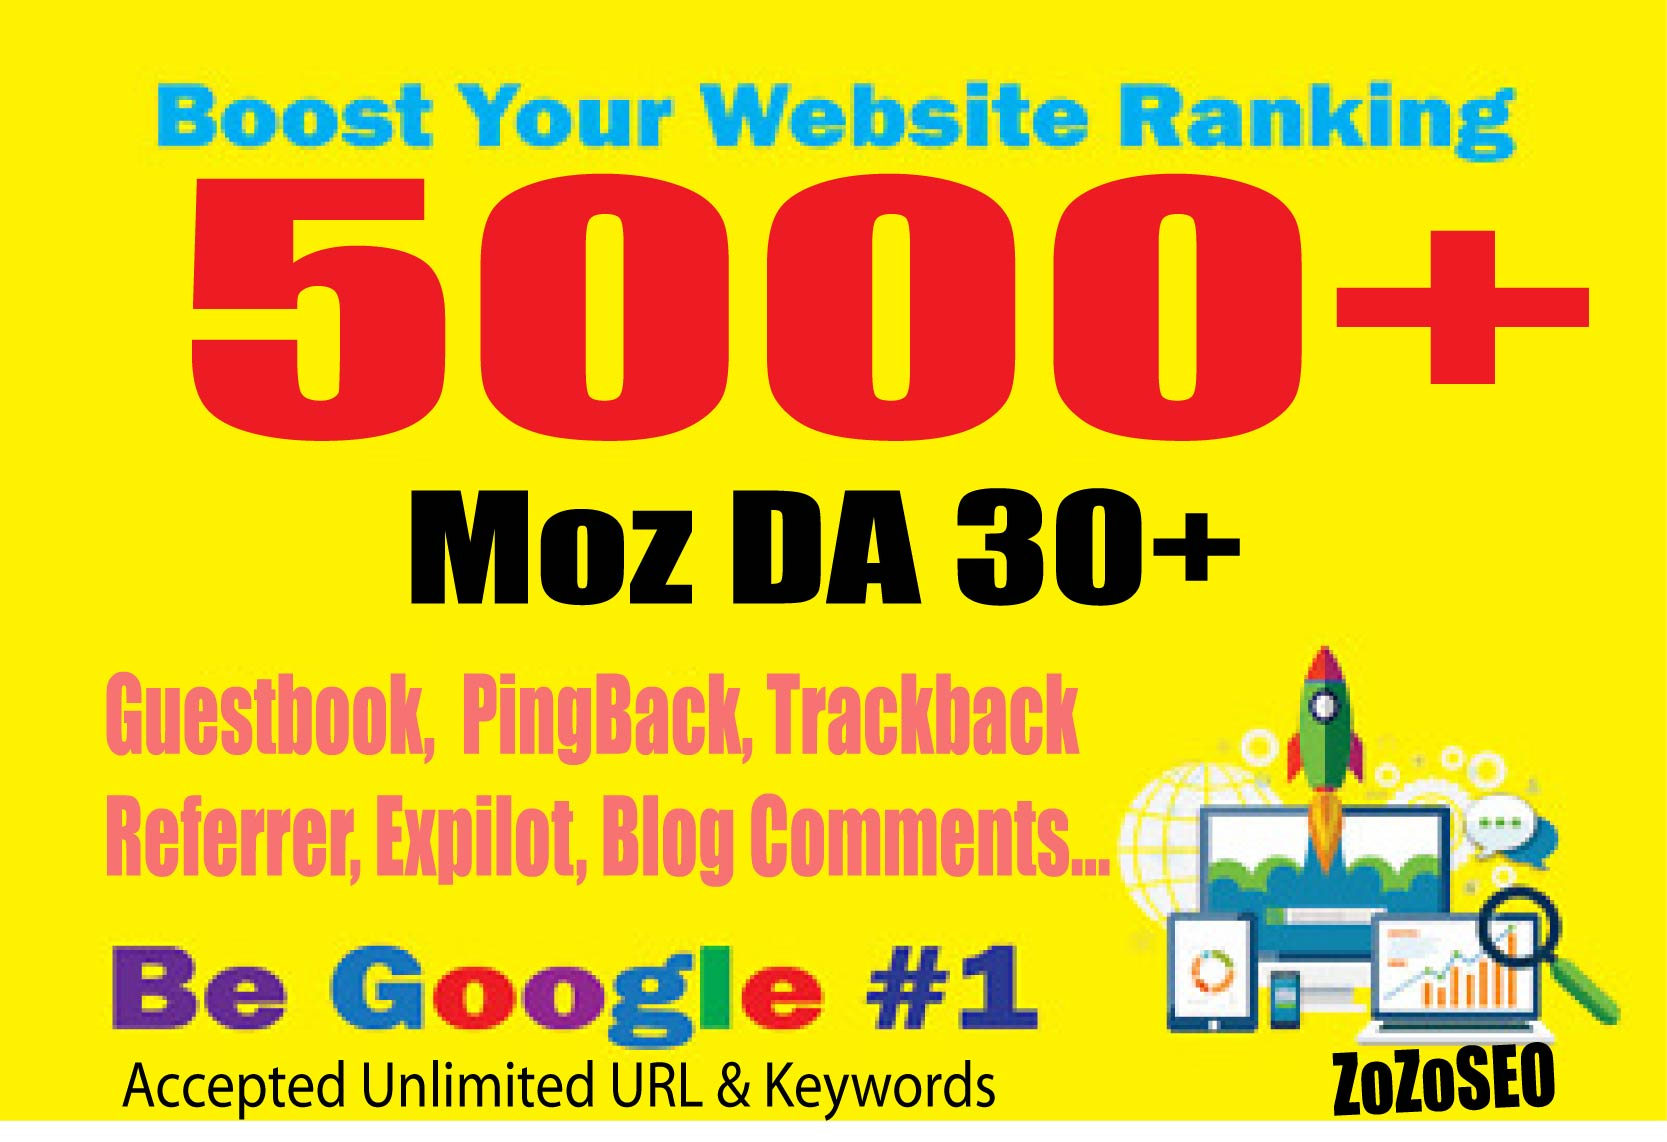 Create 5000+ DA 30+ Mix Platfrom Backlinks,  Promote Your Rank Now.